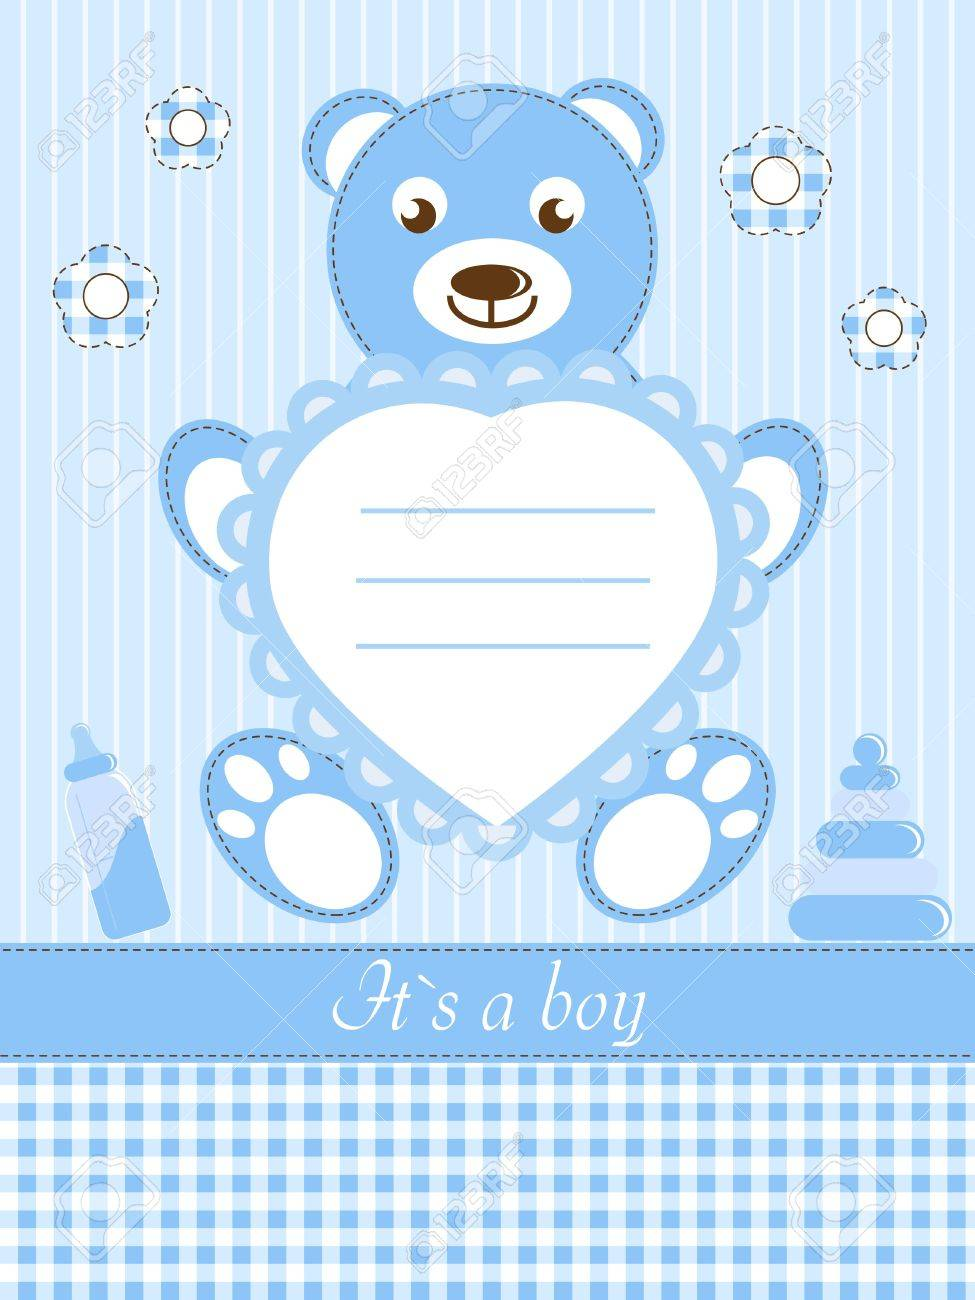 Baby Boy Shower Invitation Card Royalty Free Cliparts Vectors – Baby Shower Invitation Cards for Boys